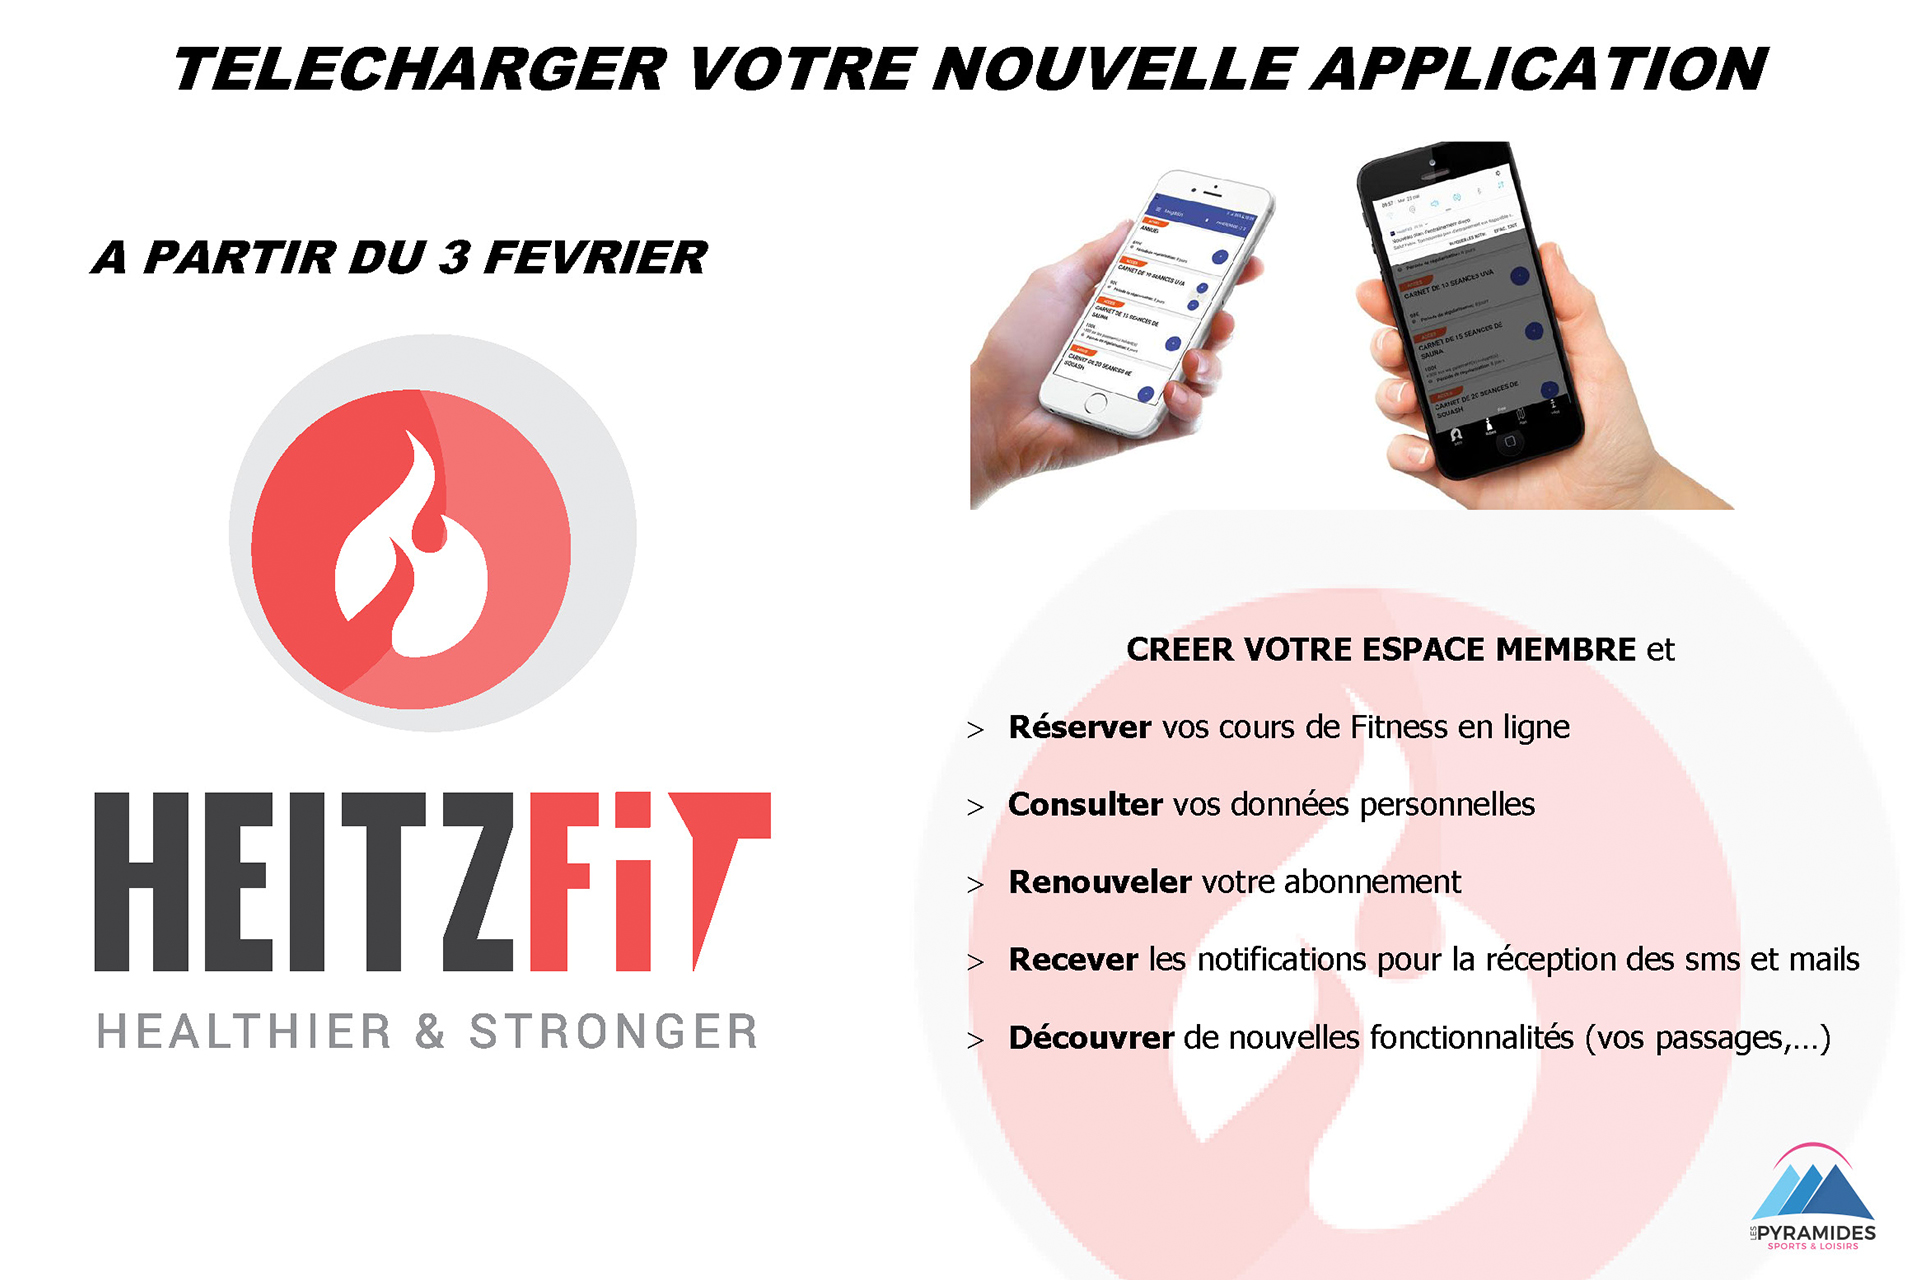 Telecharger votre nouvelle application